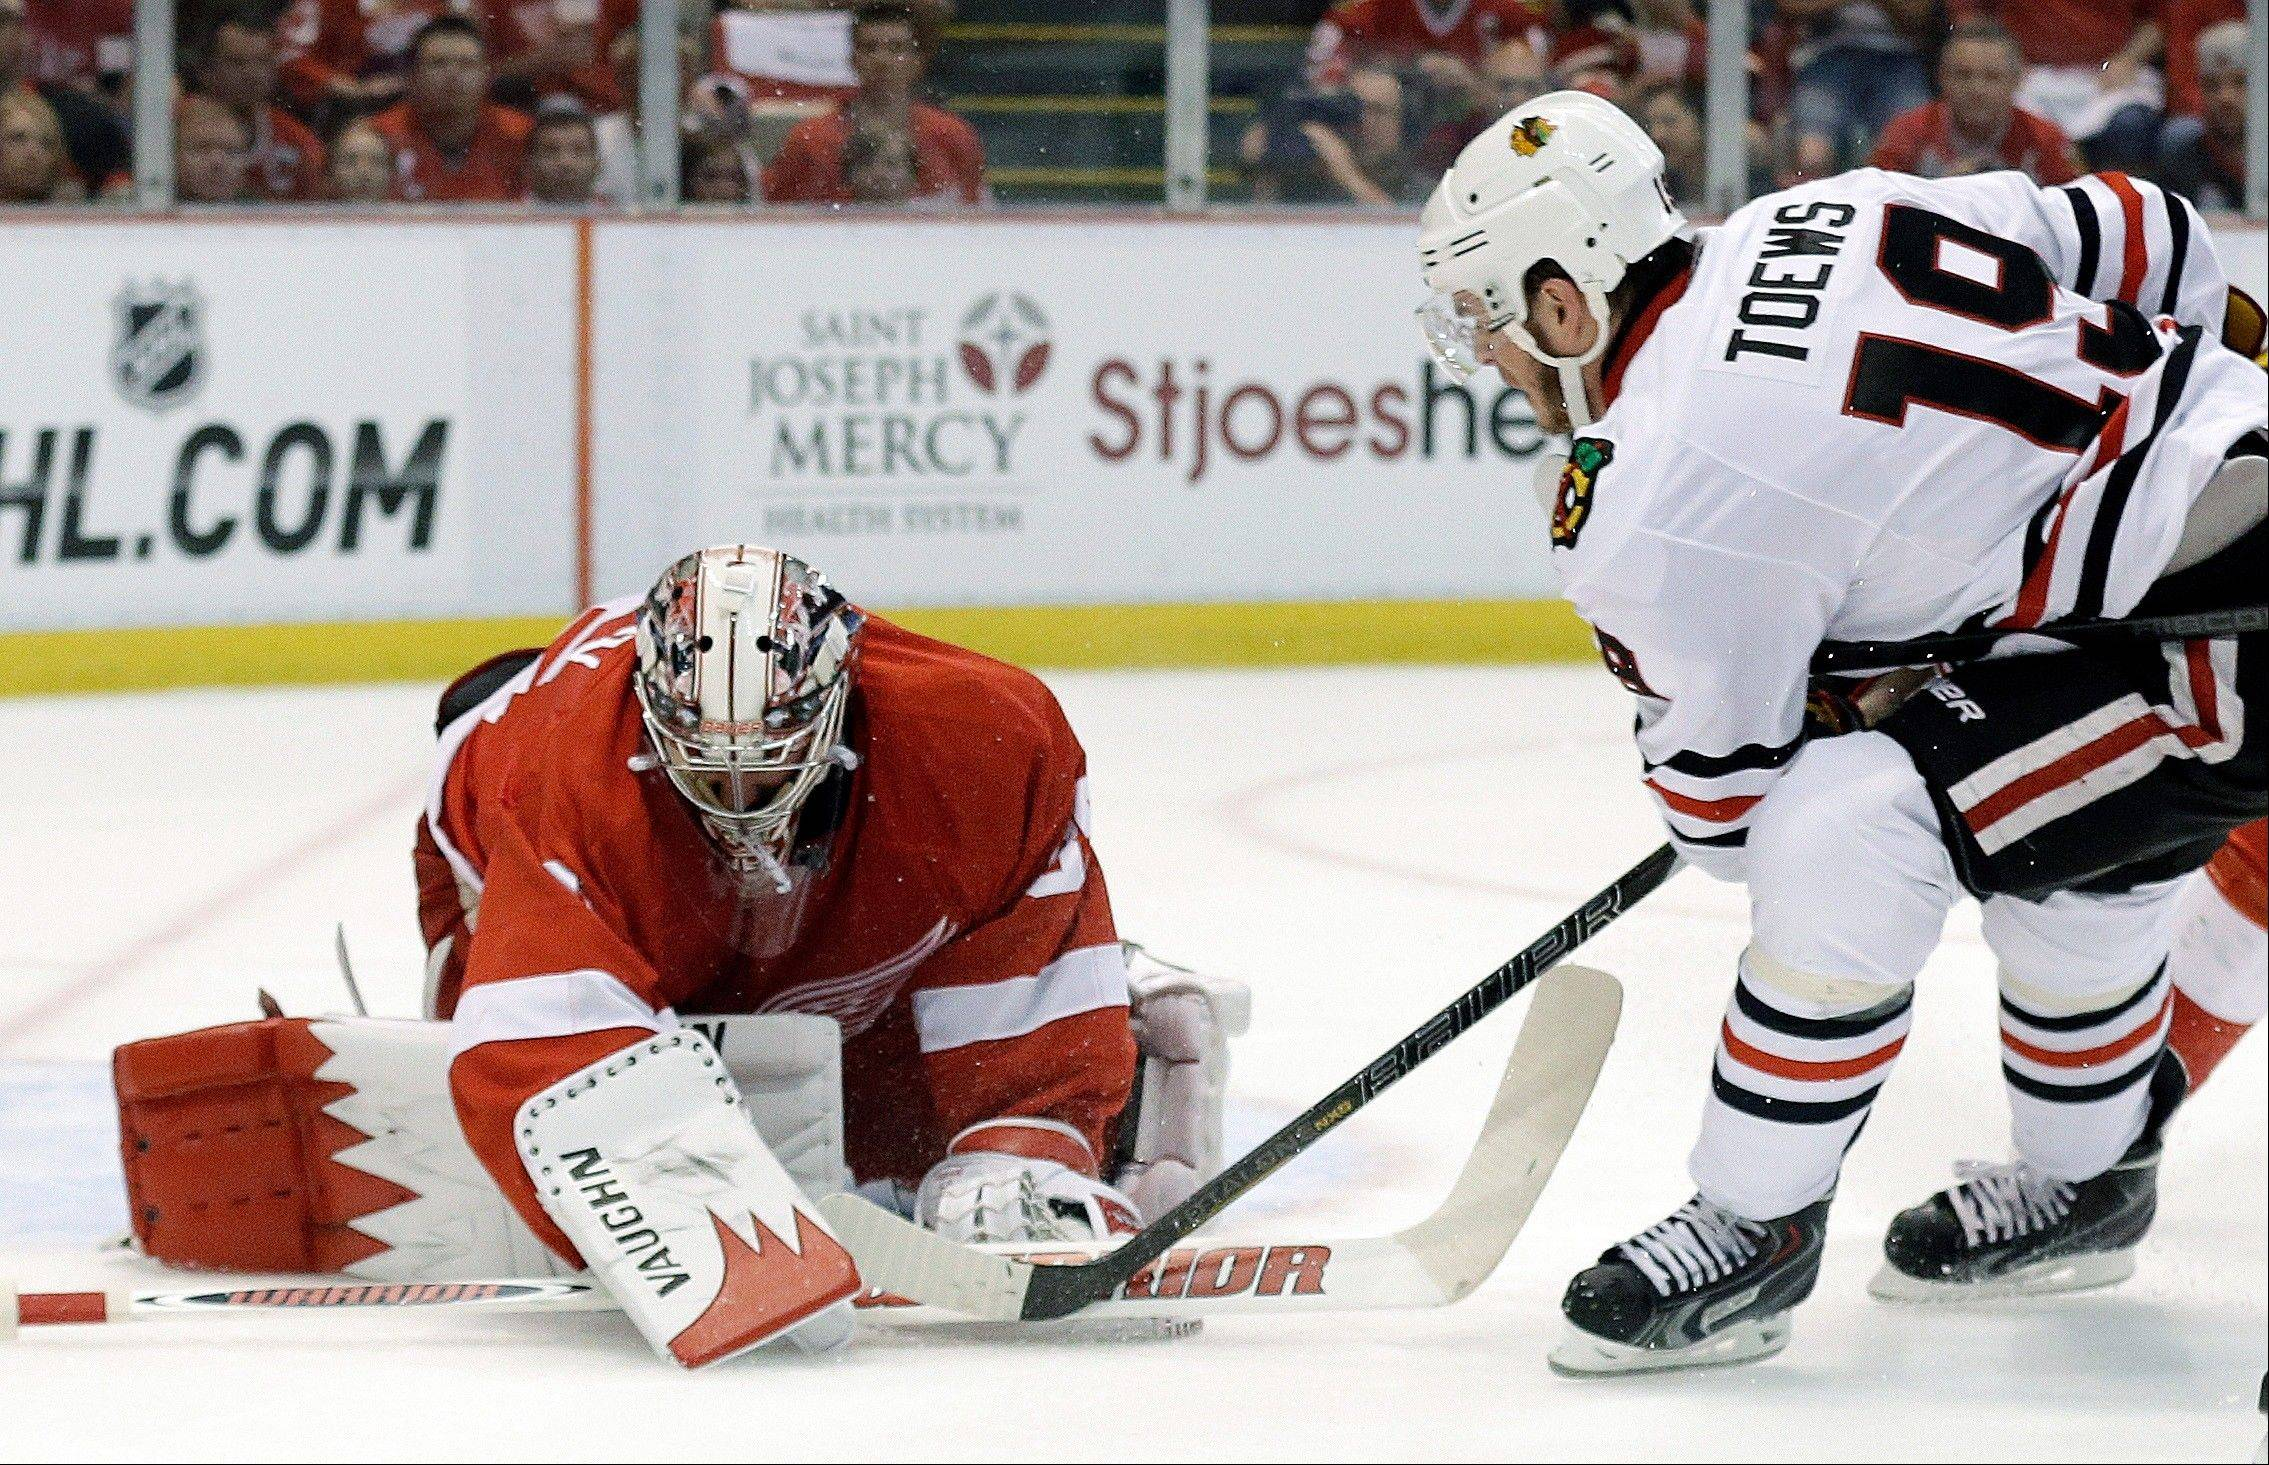 While Detroit Red Wings goalie Jimmy Howard has kept Blackhawks center Jonathan Toews scoreless during the playoffs, he was helped in Game 4 when Toews was sent to the penalty box three times in the game.